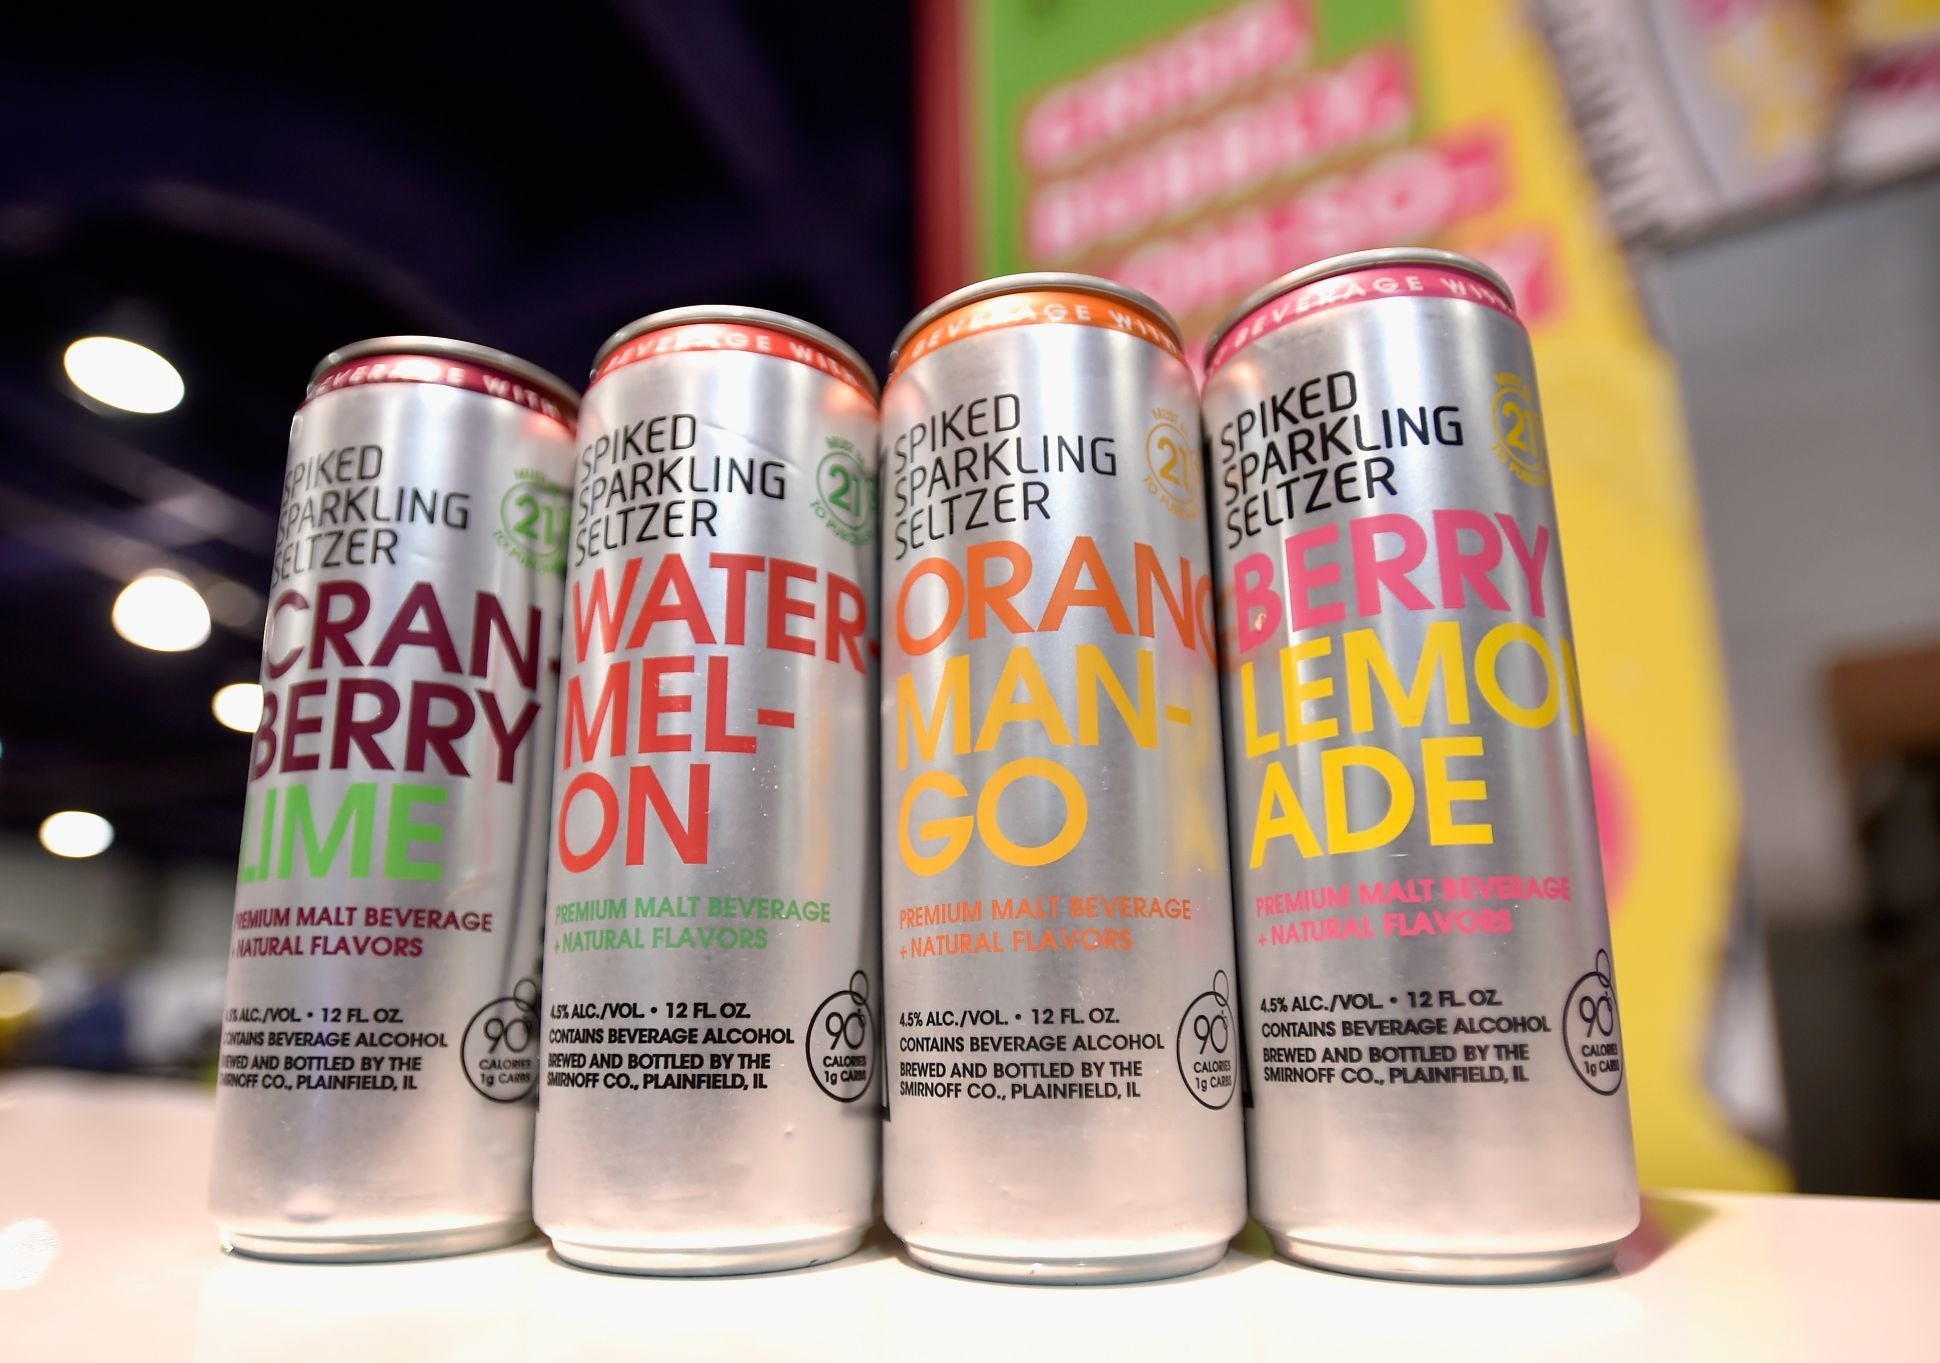 Smirnoff Spiked Sparkling Seltzer Is One Of The Most Popular Brands In This New Drinking Trend Lighter And Less Alcohol Spiked Seltzer Flavored Drinks Seltzer